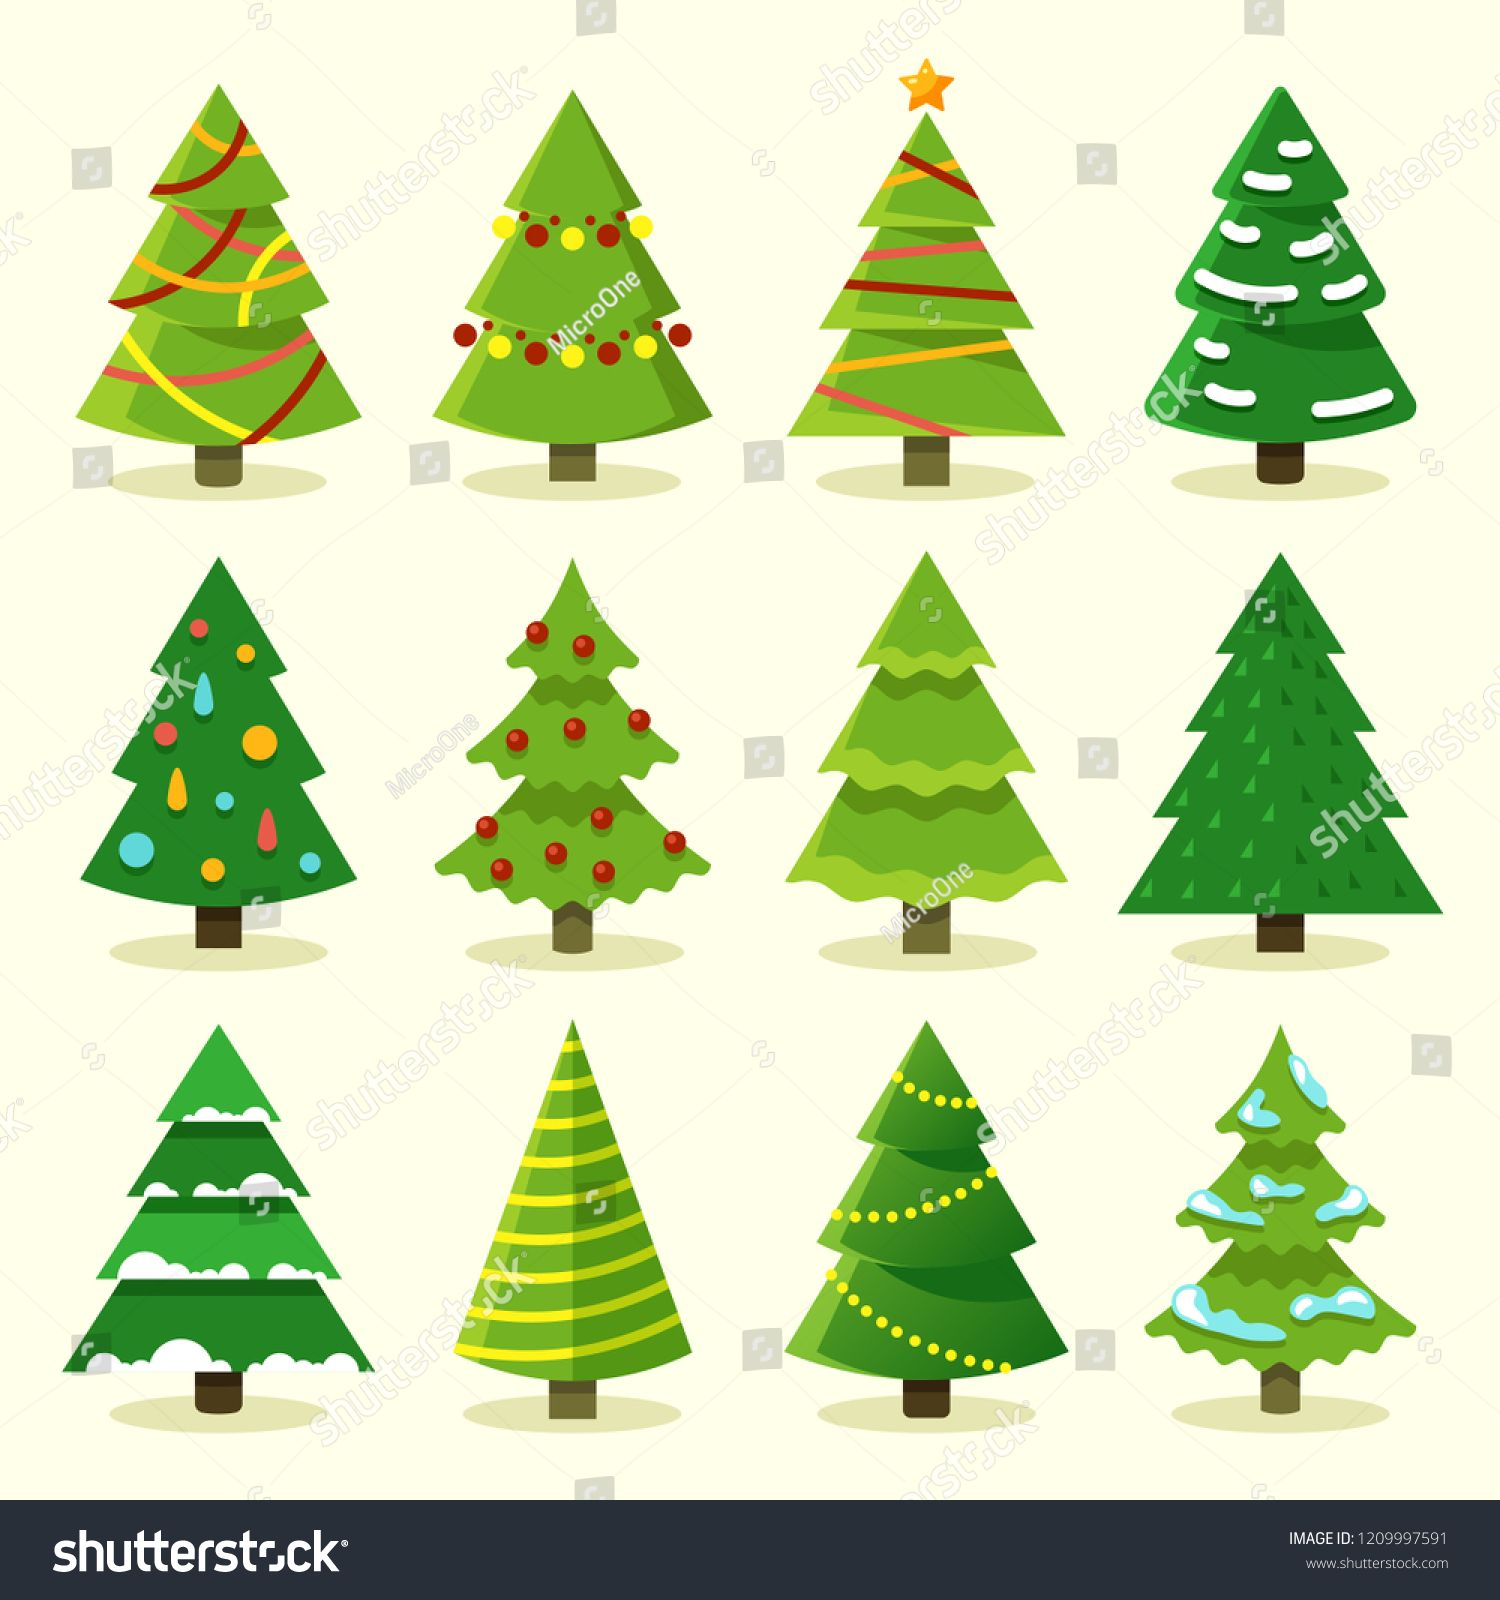 Winter Colorful Cartoon Christmas Tree Vector Set Ad Sponsored Cartoon Colorful Winter Ch In 2020 Cartoon Christmas Tree Christmas Tree Graphic Christmas Drawing